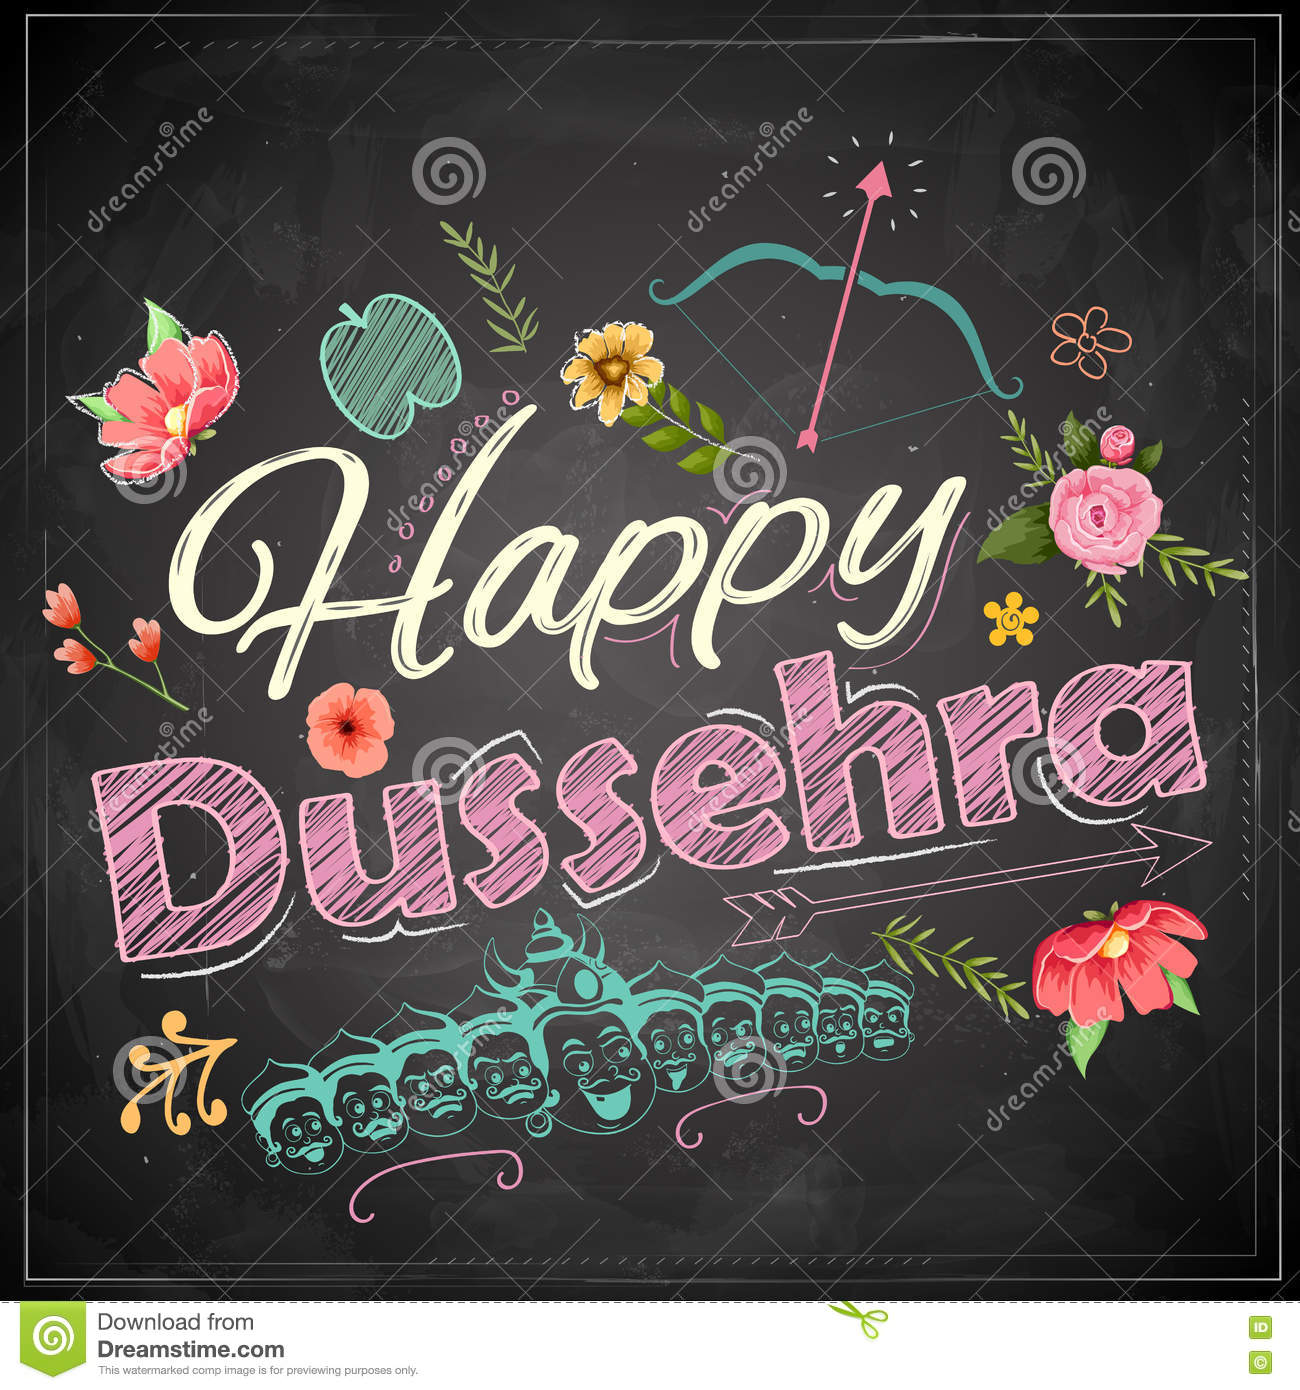 Floral greeting for happy dussehra navratri festival of india on floral greeting for happy dussehra navratri festival of india on chalkboard kristyandbryce Choice Image